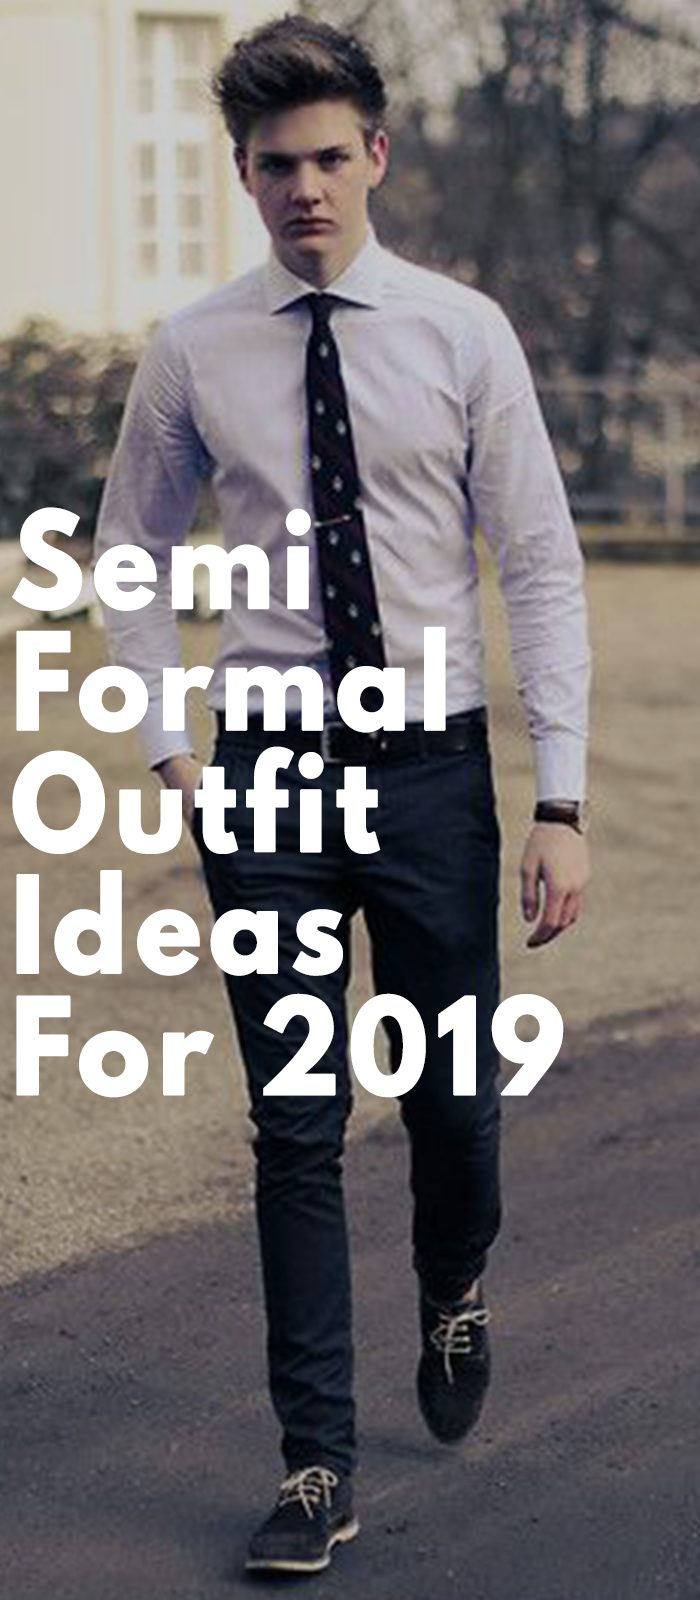 Semi Formal Outfit Ideas For 2019